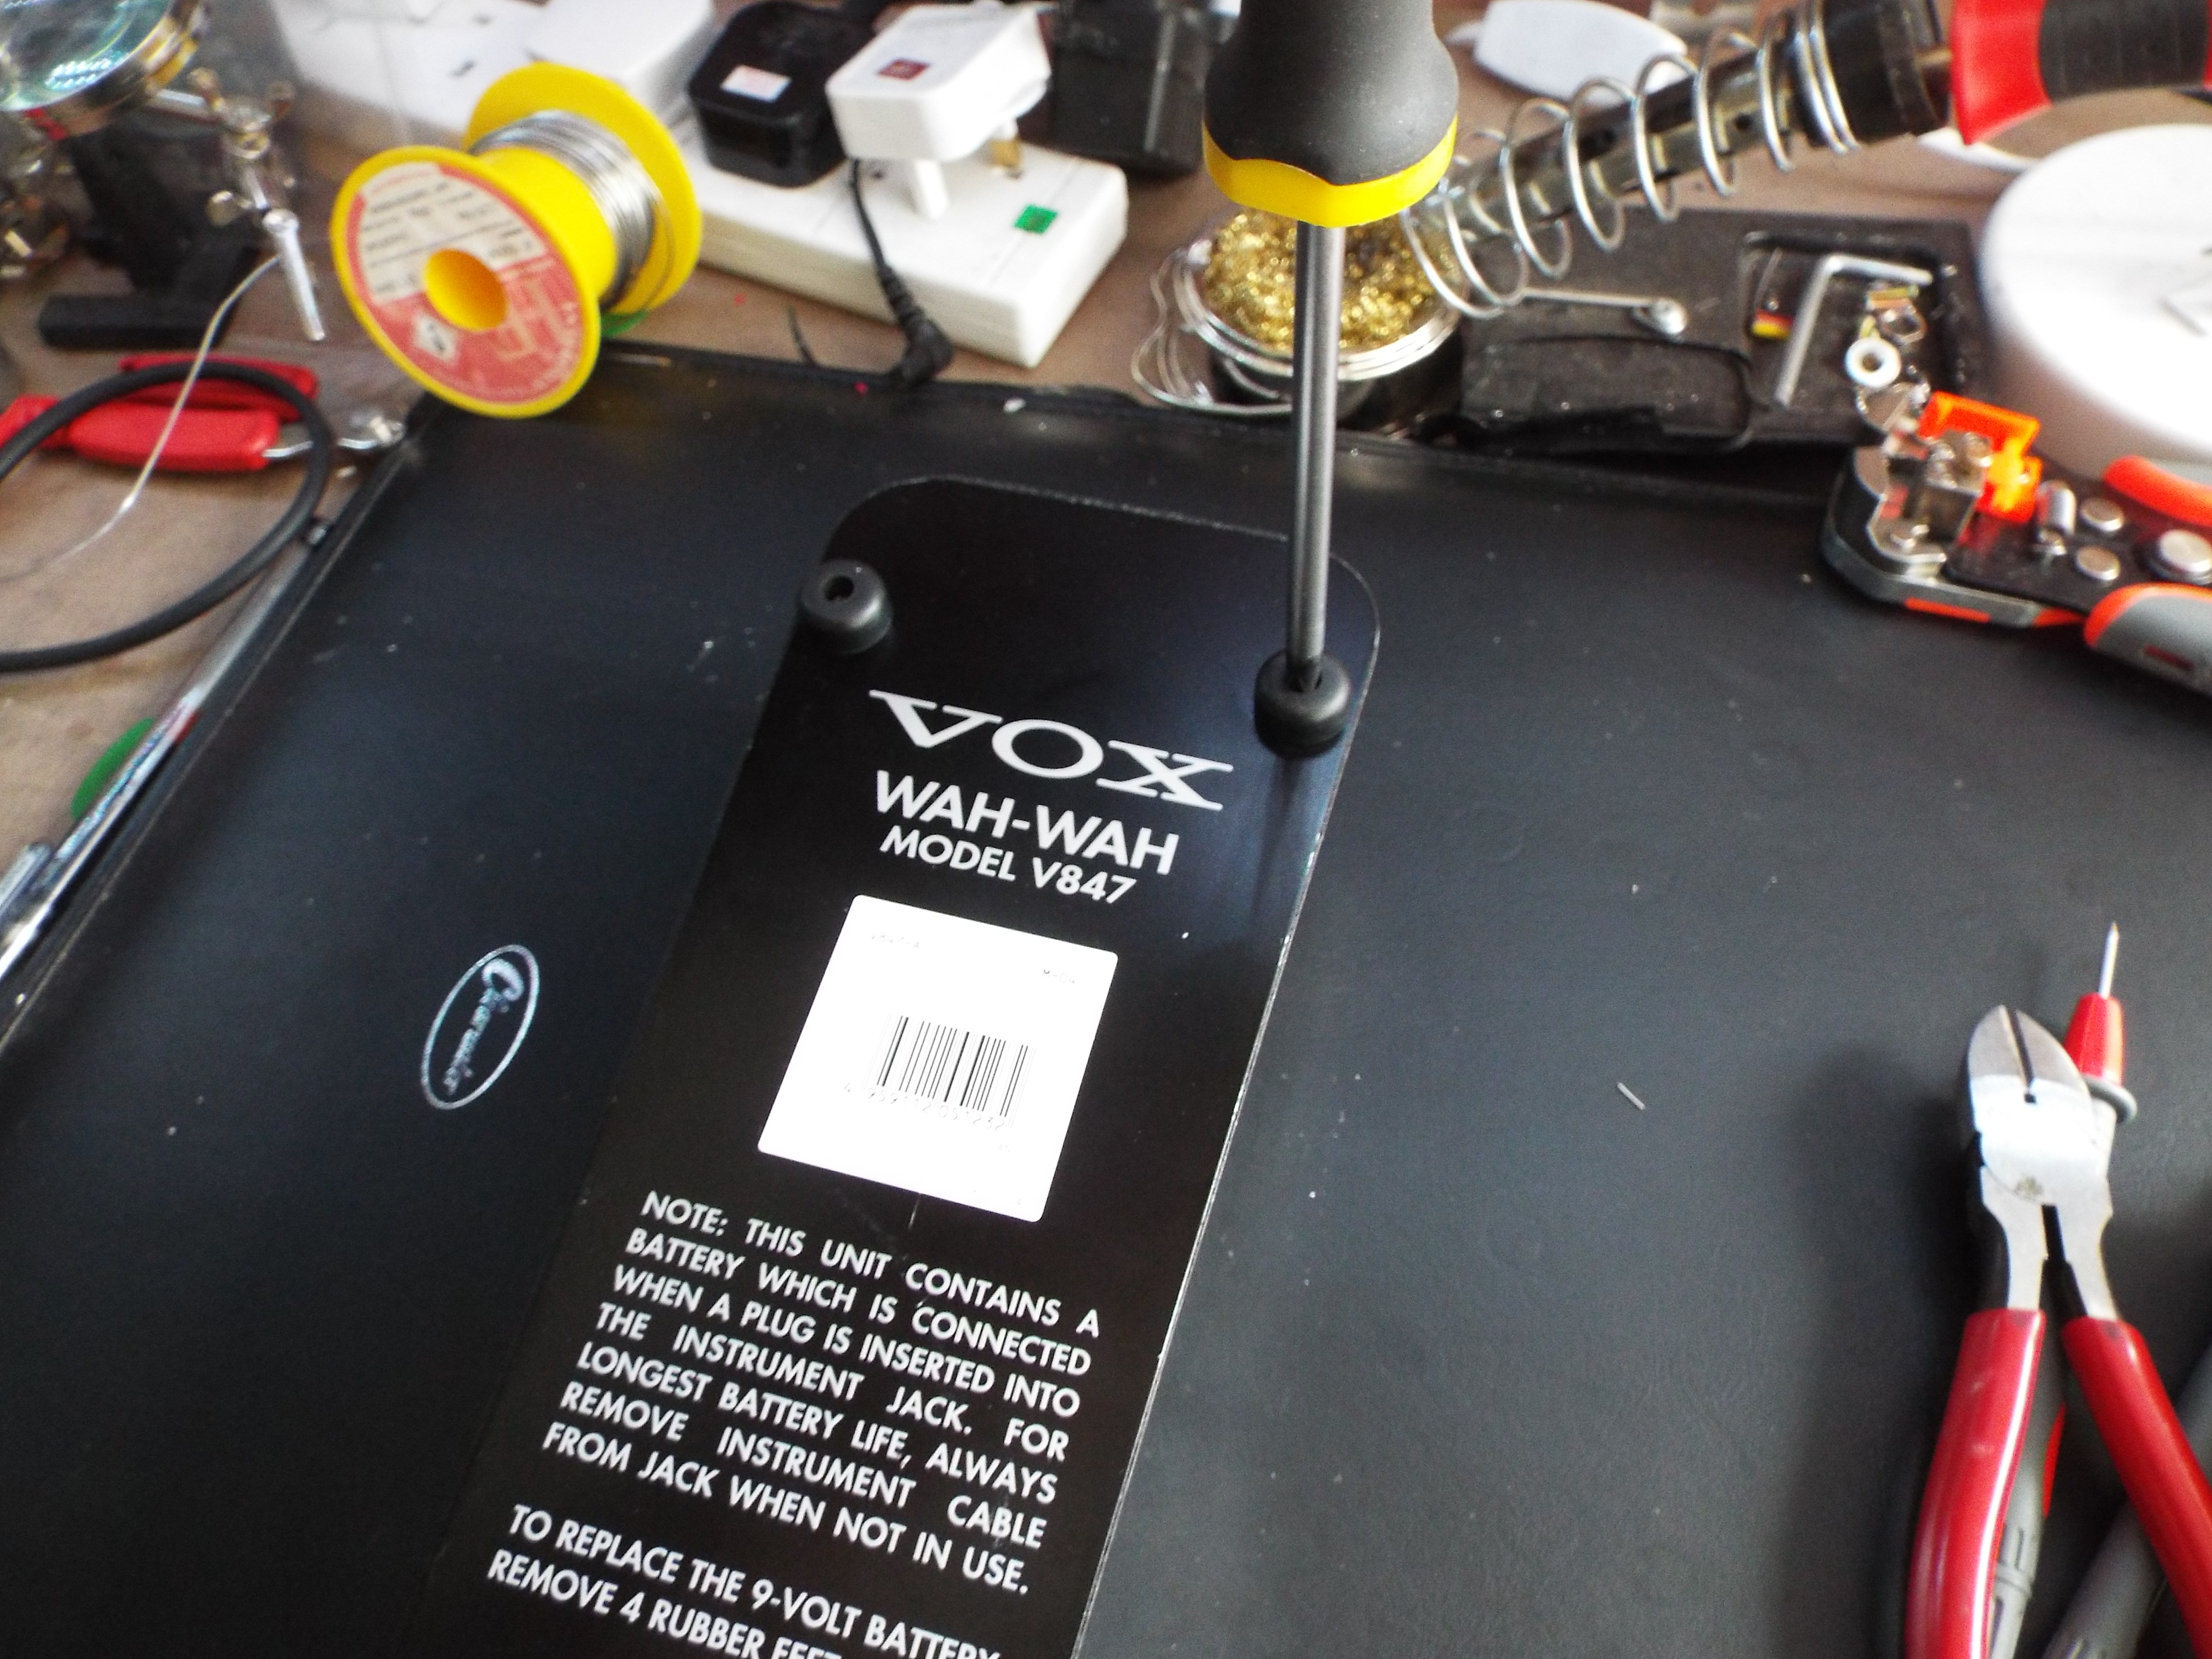 Vox Wah Base Electrosmash V847 Calling All Users A Cheap Easy Very Effective Mod 4608x3456